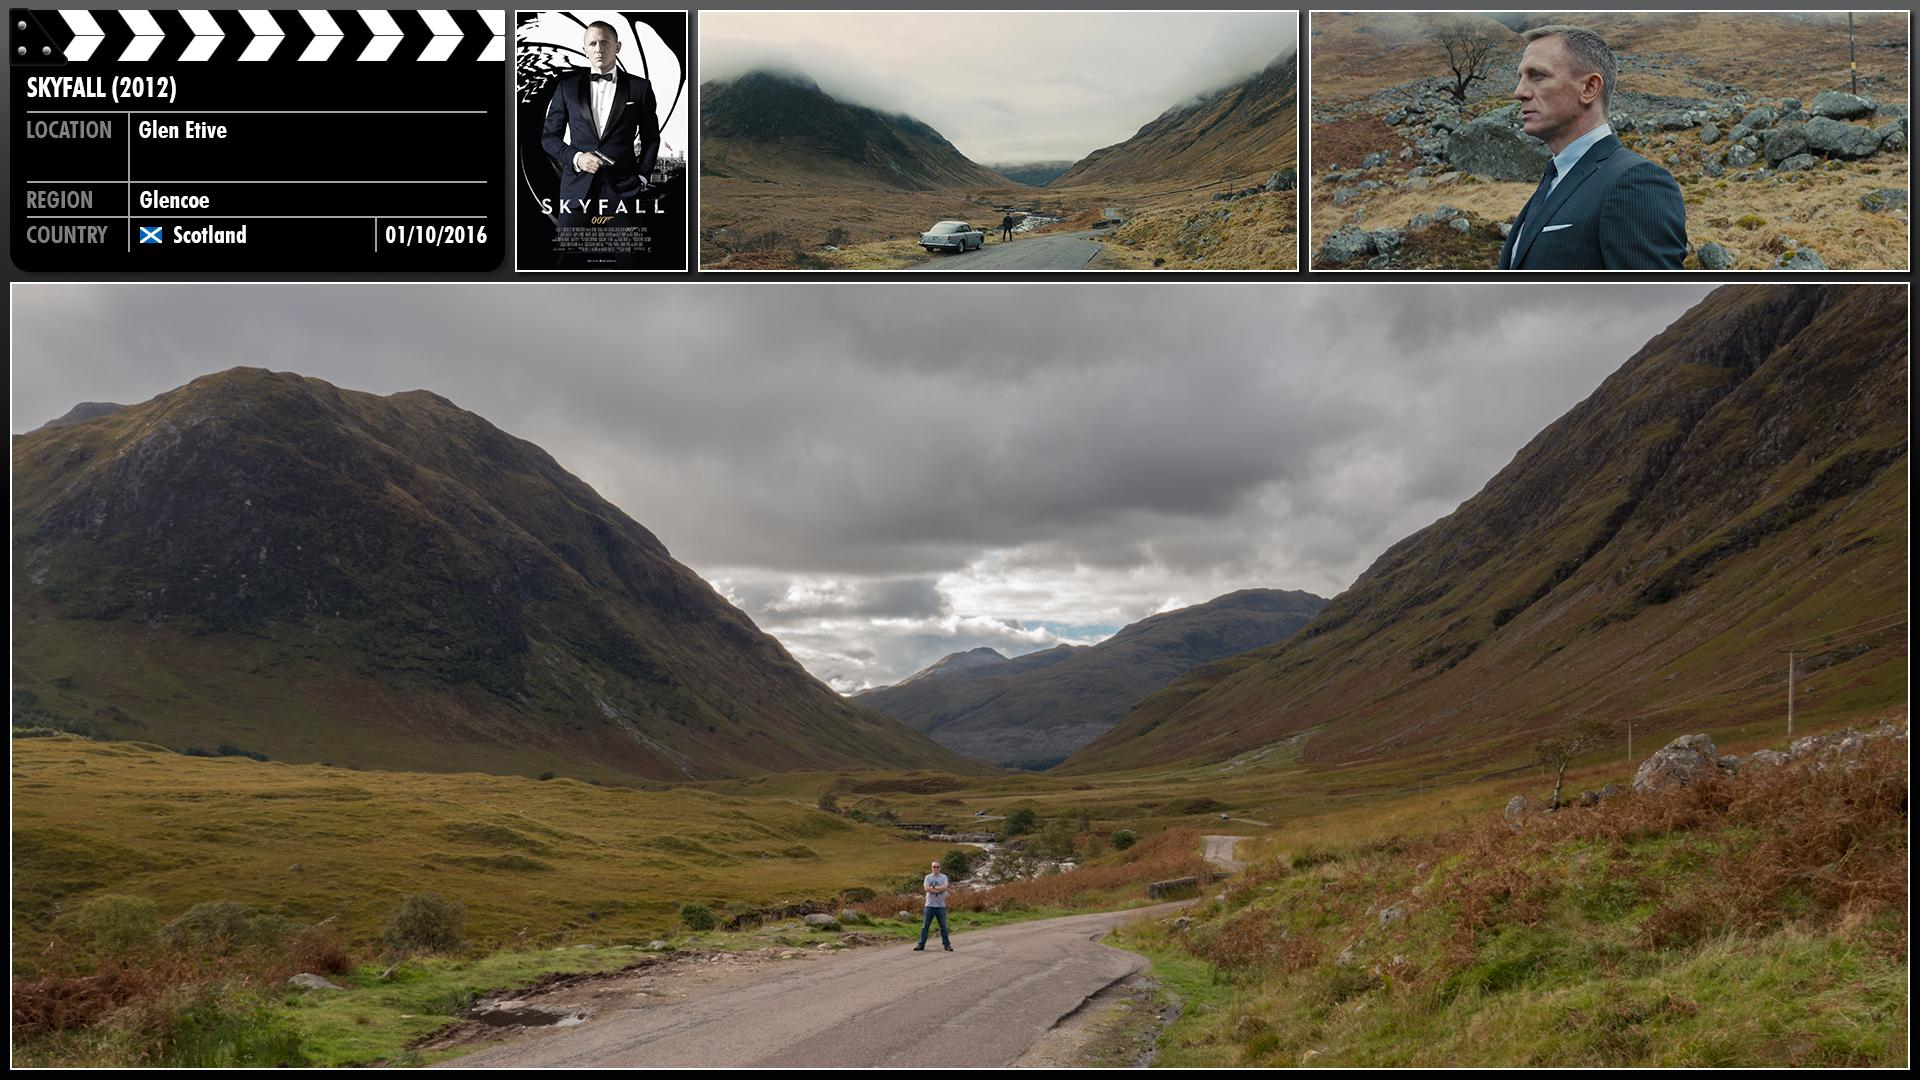 Filming location photo for Skyfall (2012) 2 of 3